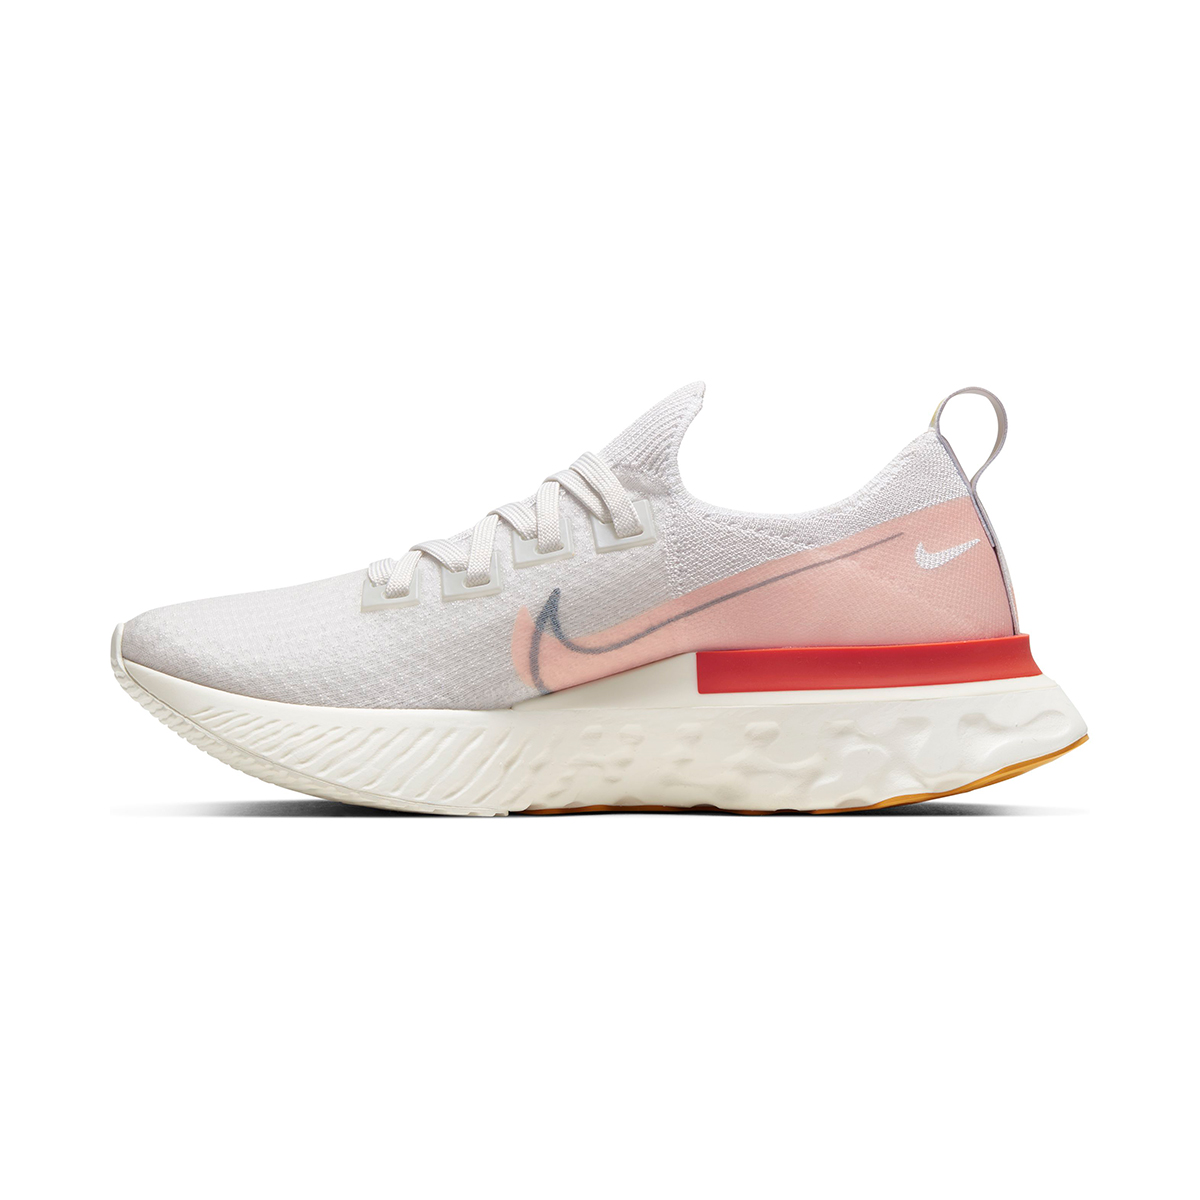 Women's Nike React Infinity Run Flyknit Running Shoe - Color: Platinum Tint/Washed Coral - Size: 5 - Width: Regular, Platinum Tint/Washed Coral, large, image 2